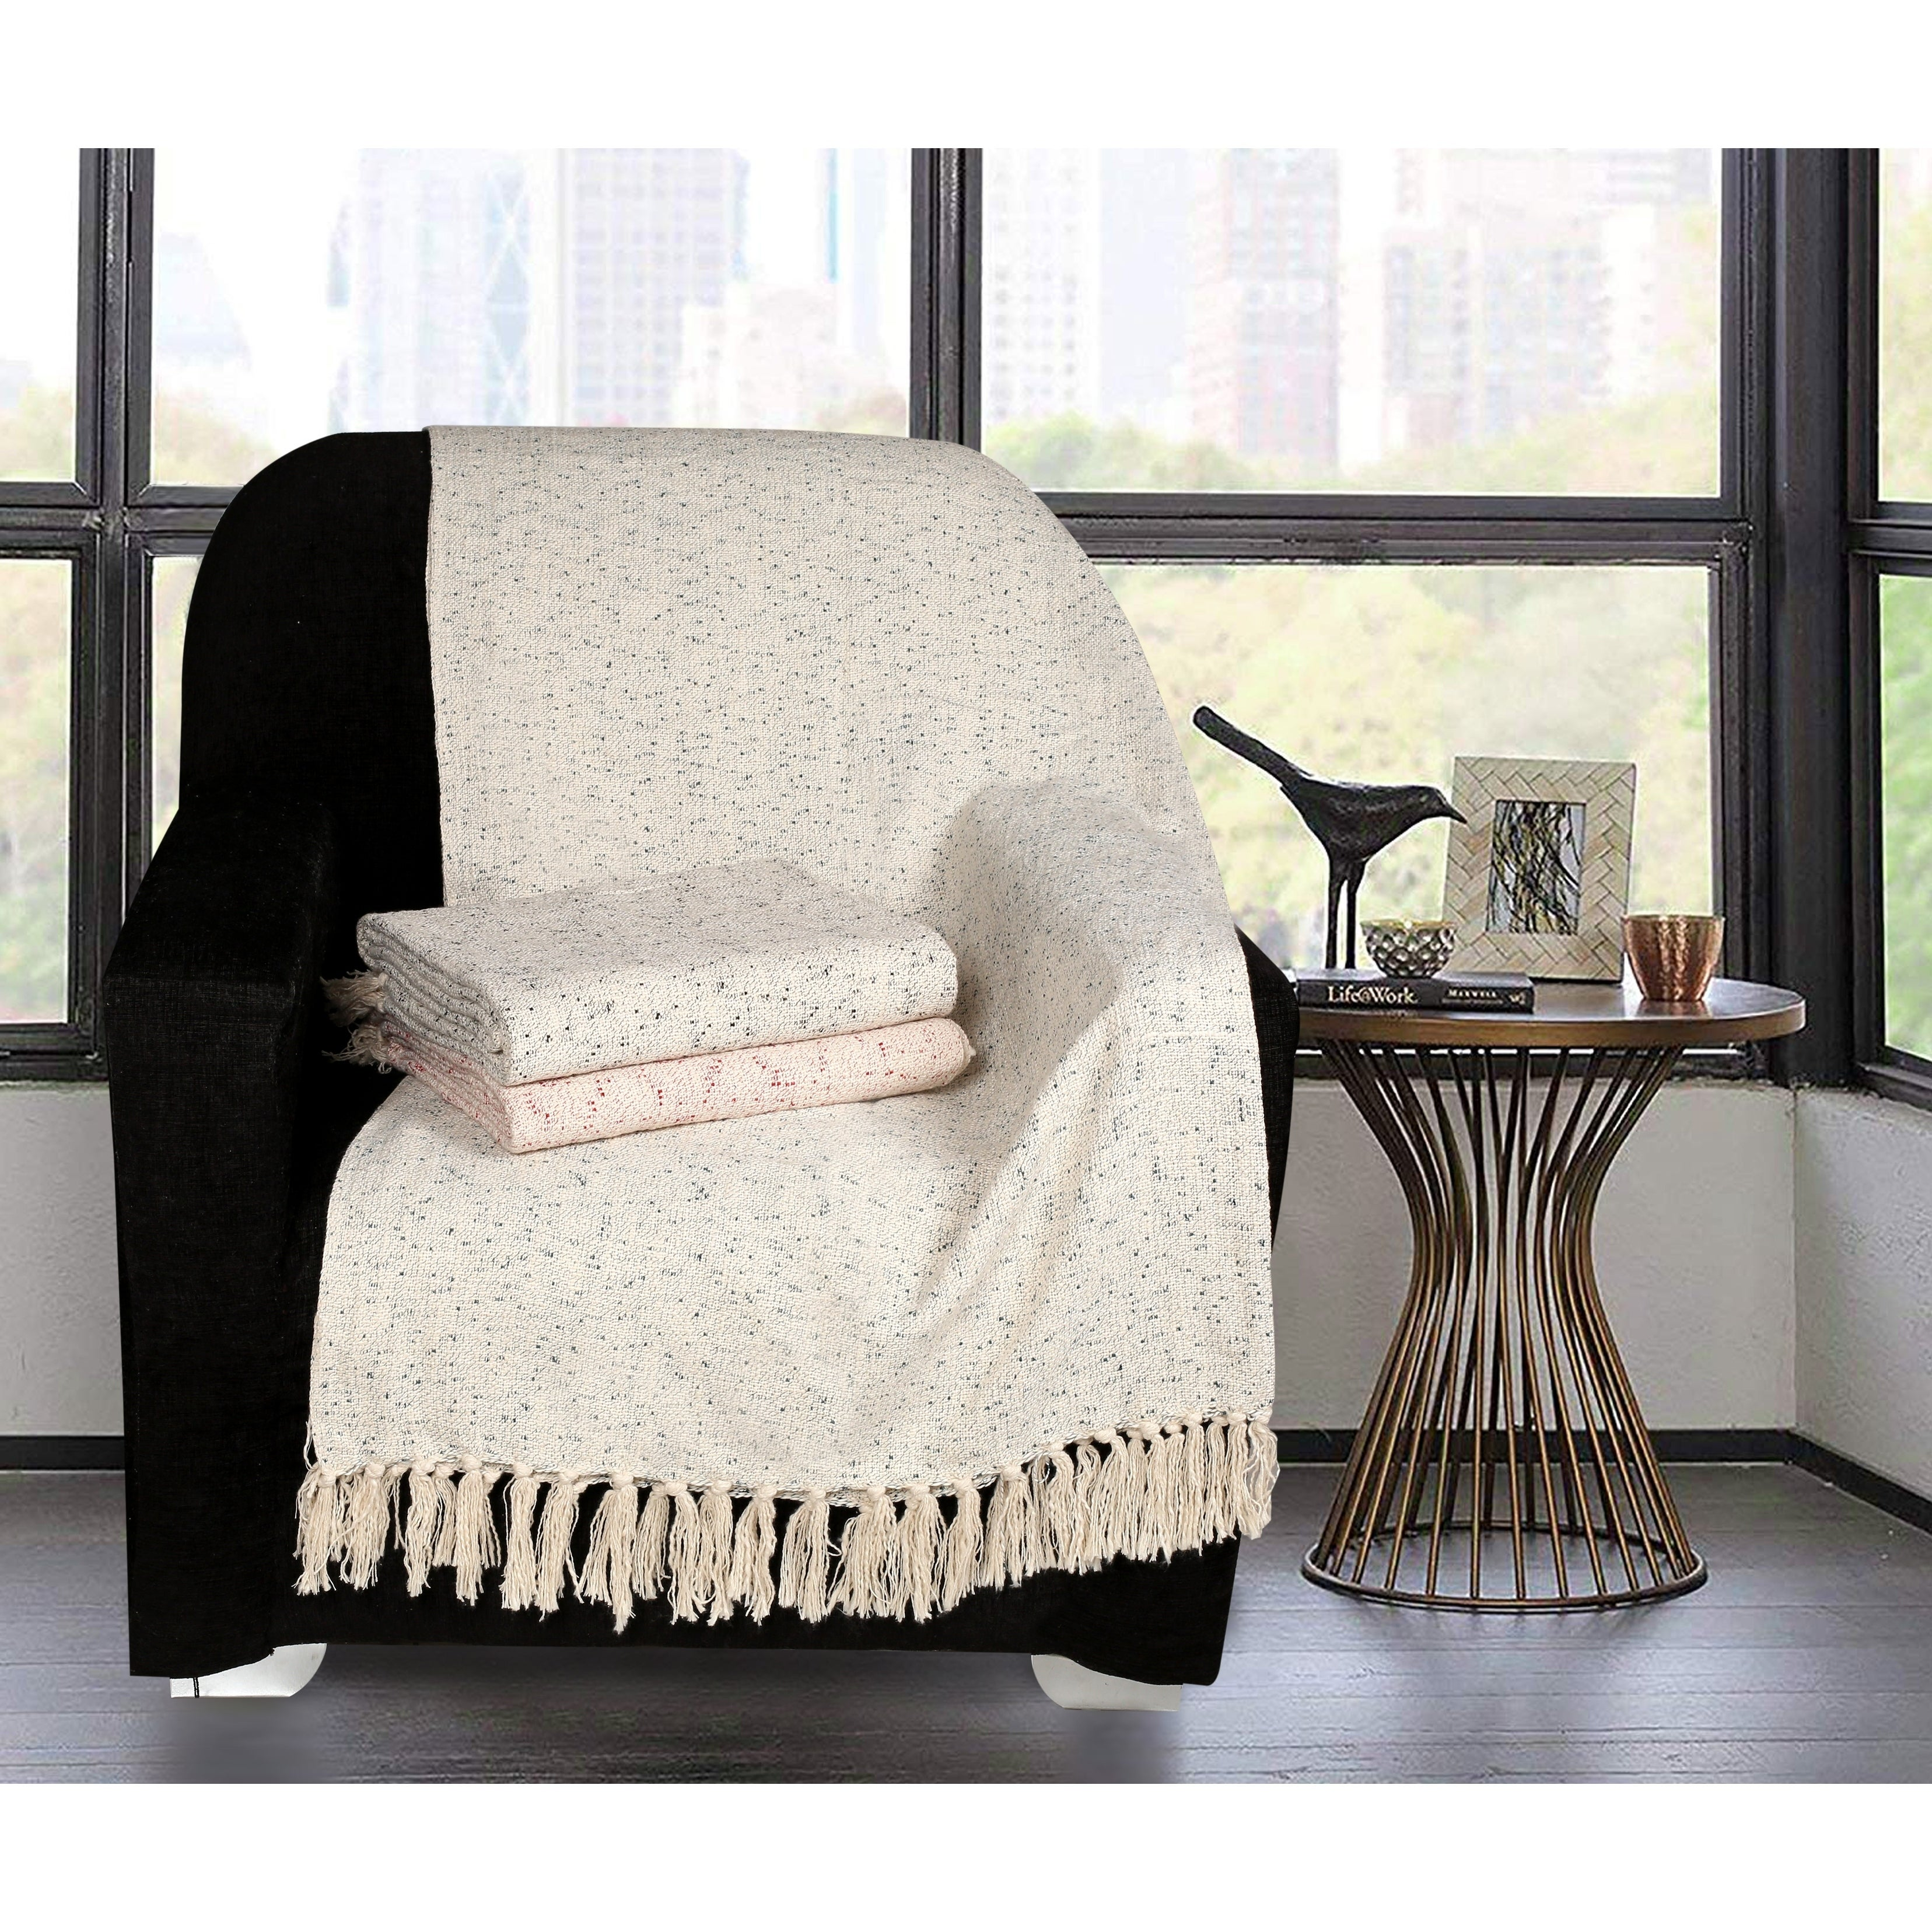 Picture of: Glamburg 100 Cotton Chunky Slub Throw Blanket For Couch Sofa Bed 50×60 All Season Cotton Throw Blanket Overstock 30359151